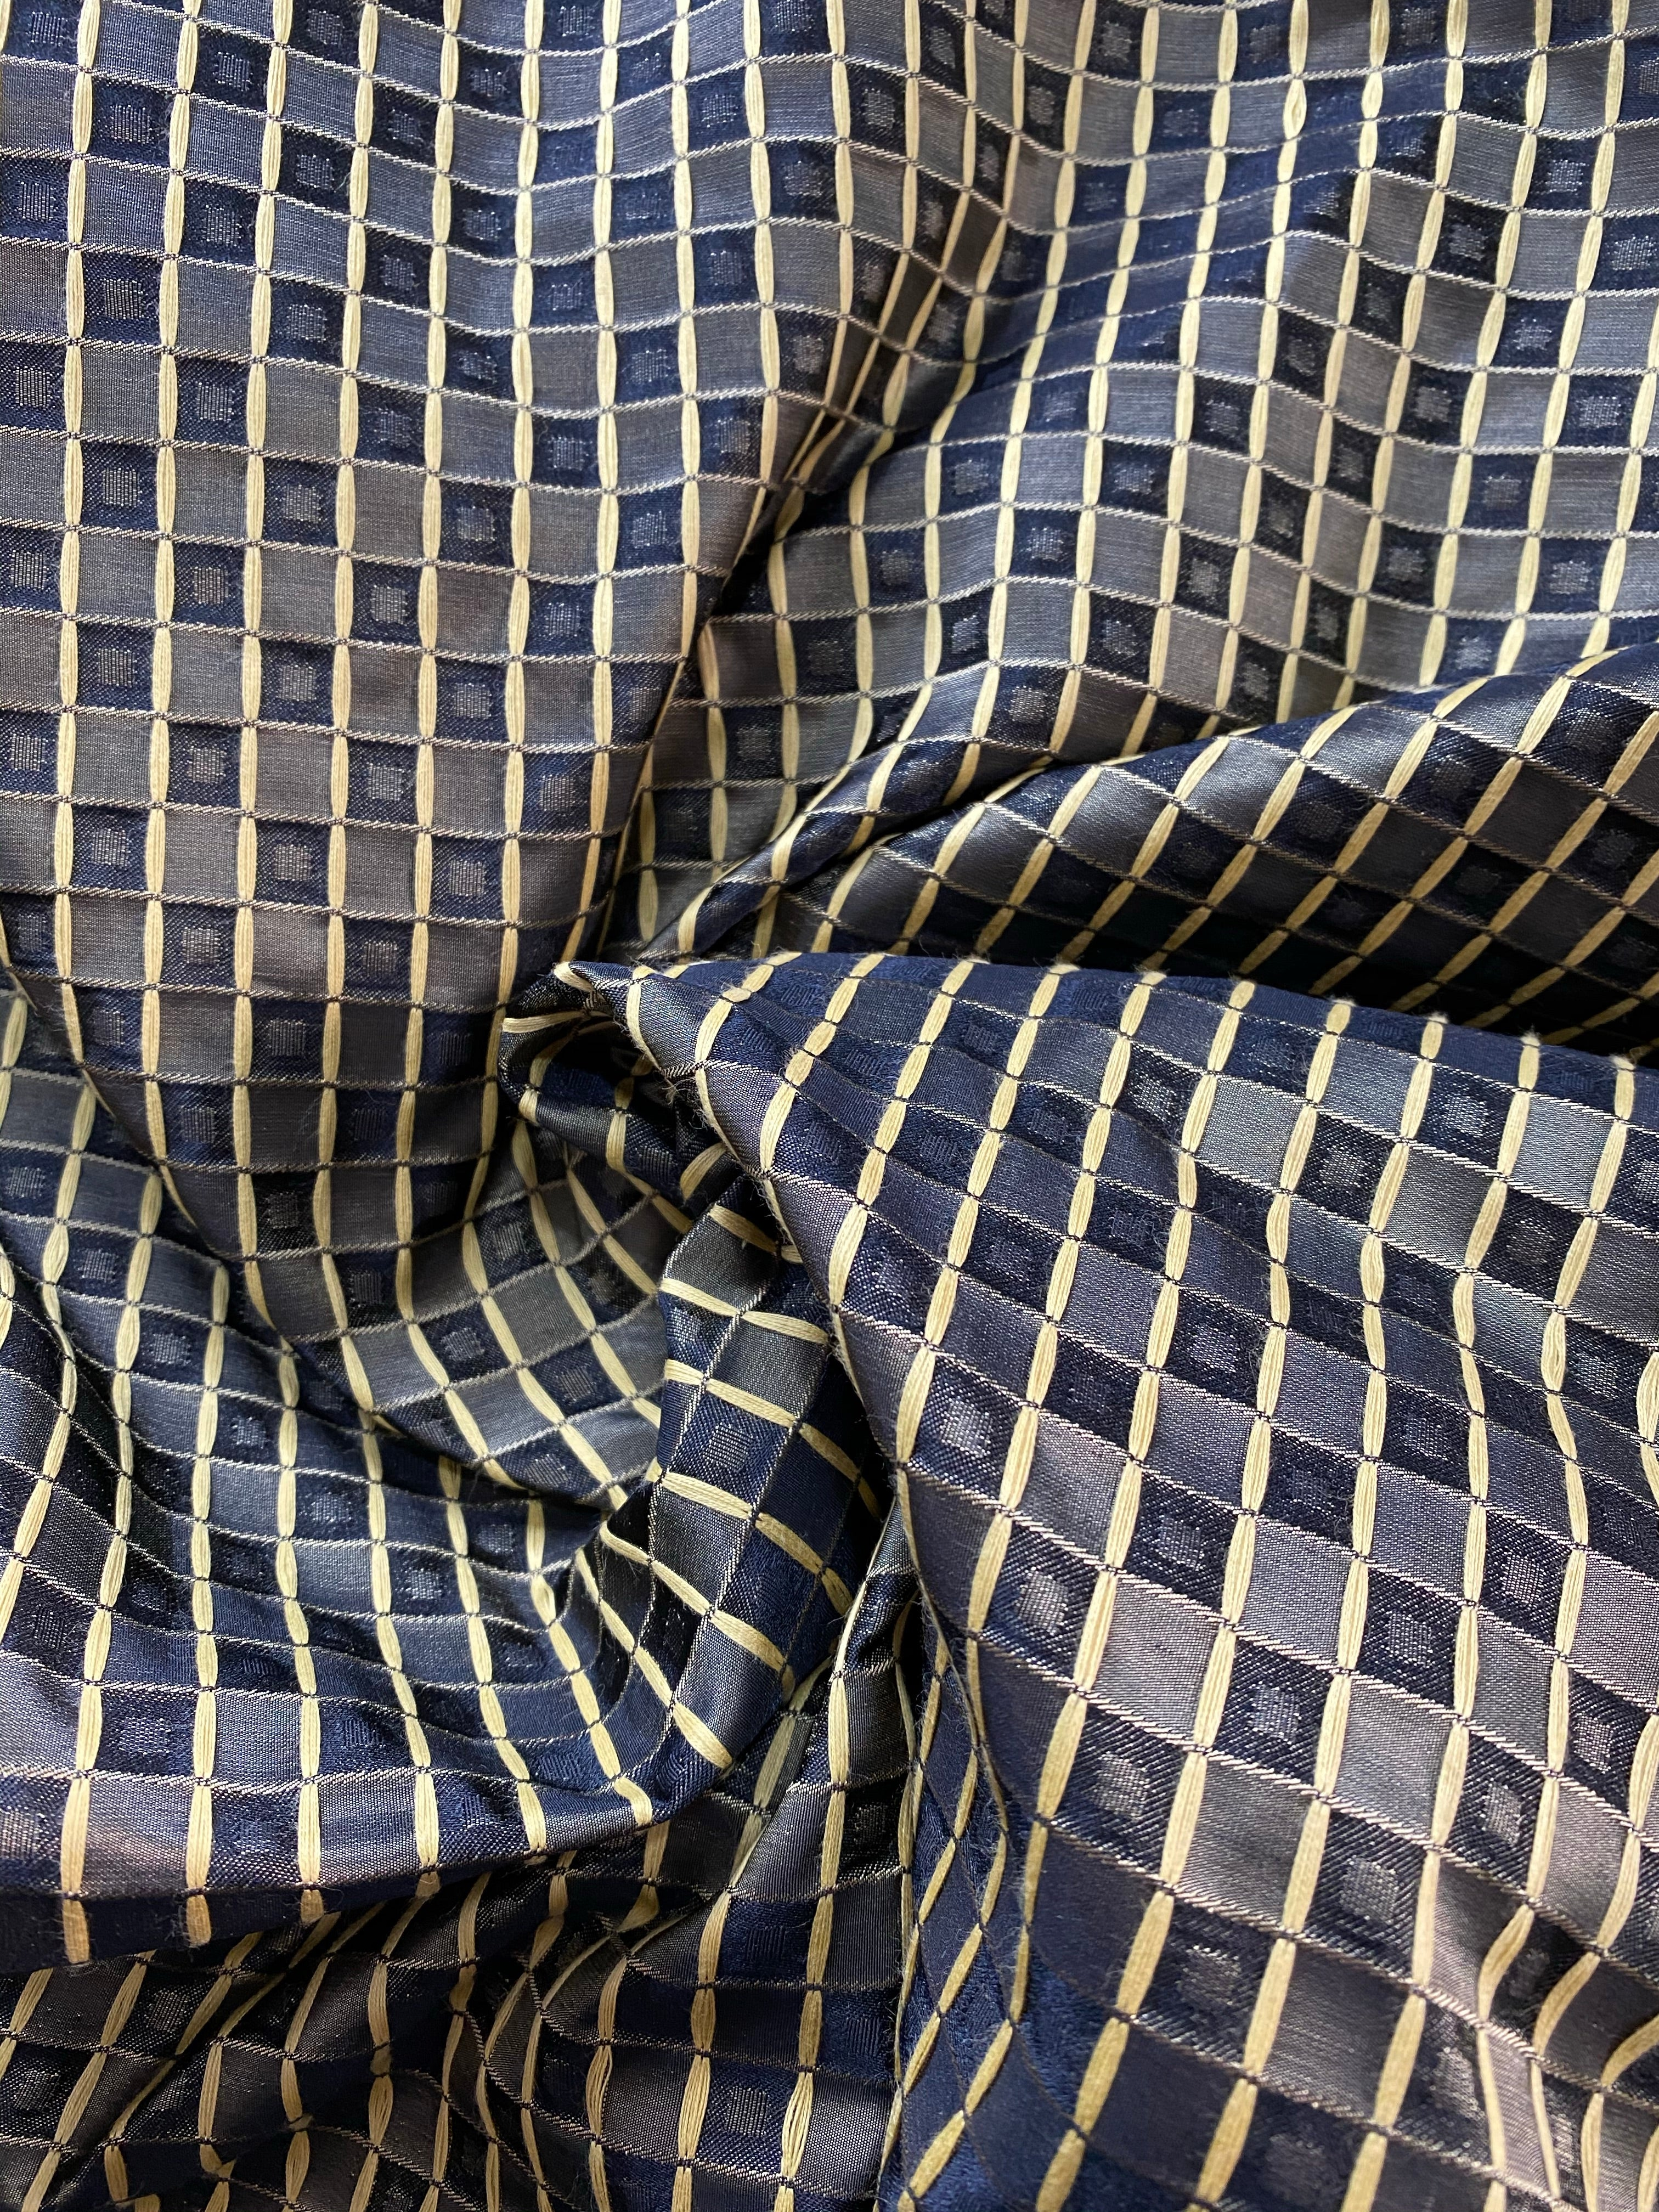 NEW Queen Angelina- 100% Silk Fabric with Black and Gold Honeycomb Motif